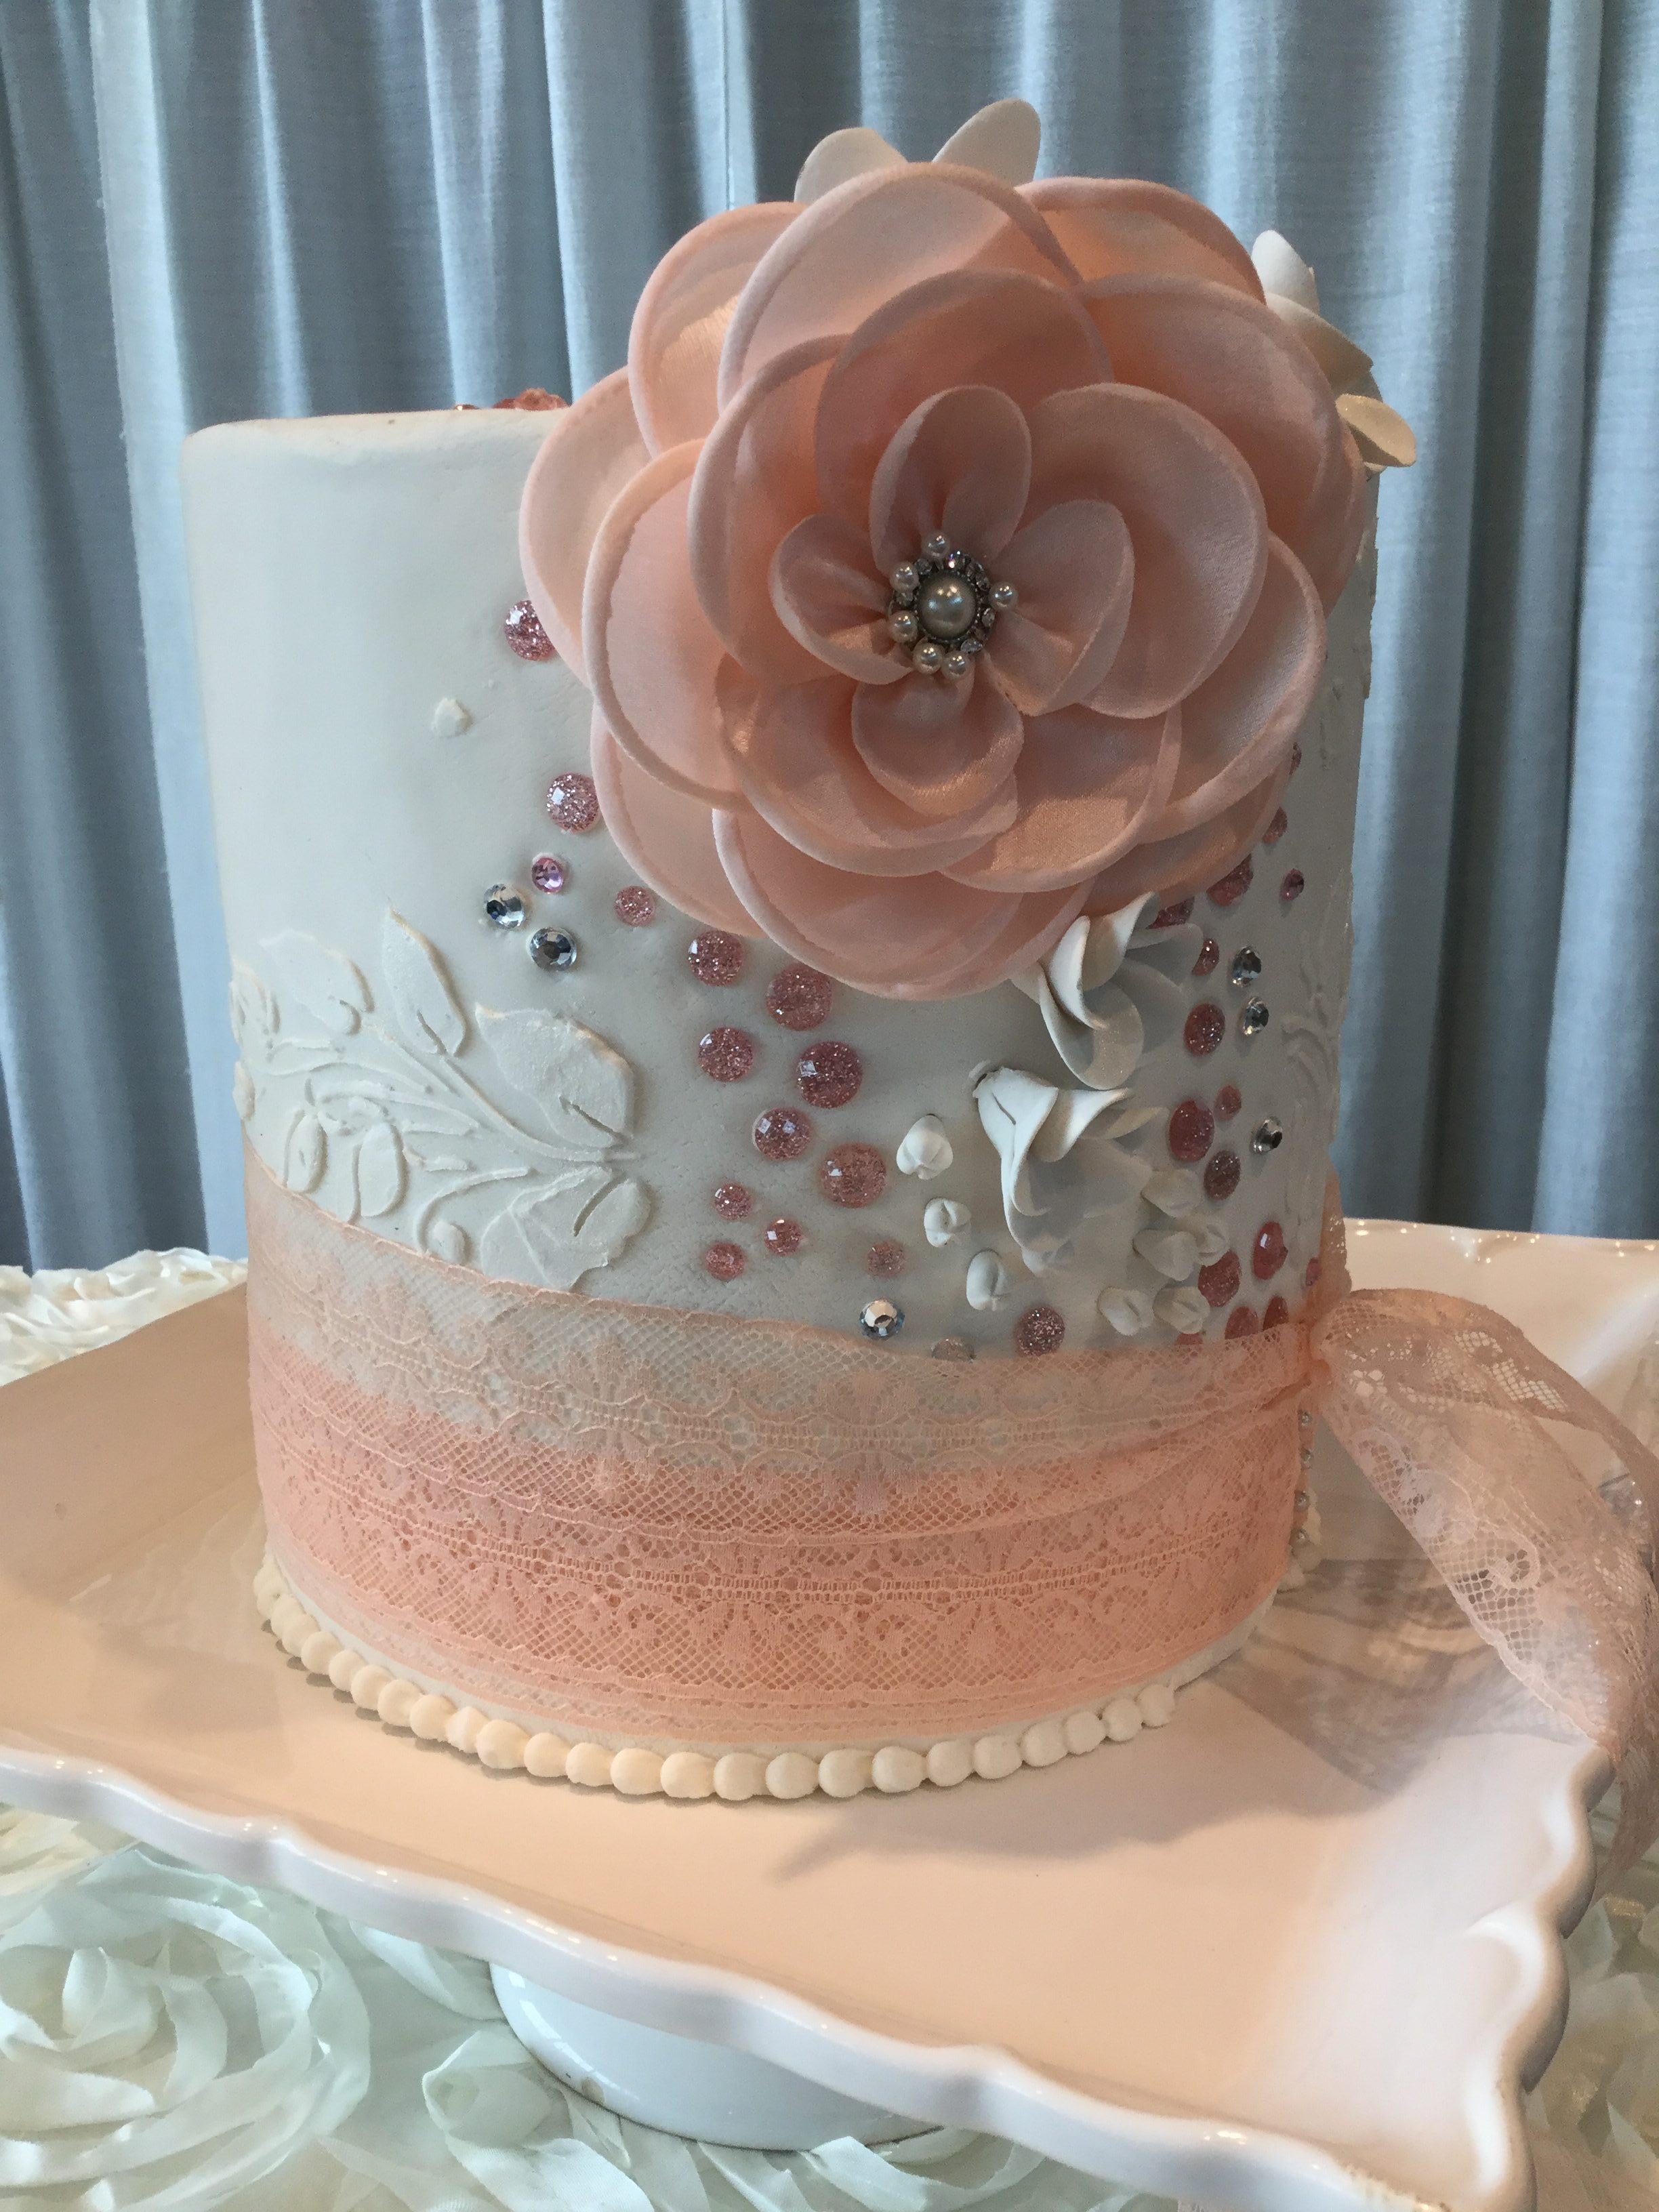 And This Pretty Little Cake With Gorgeous Details